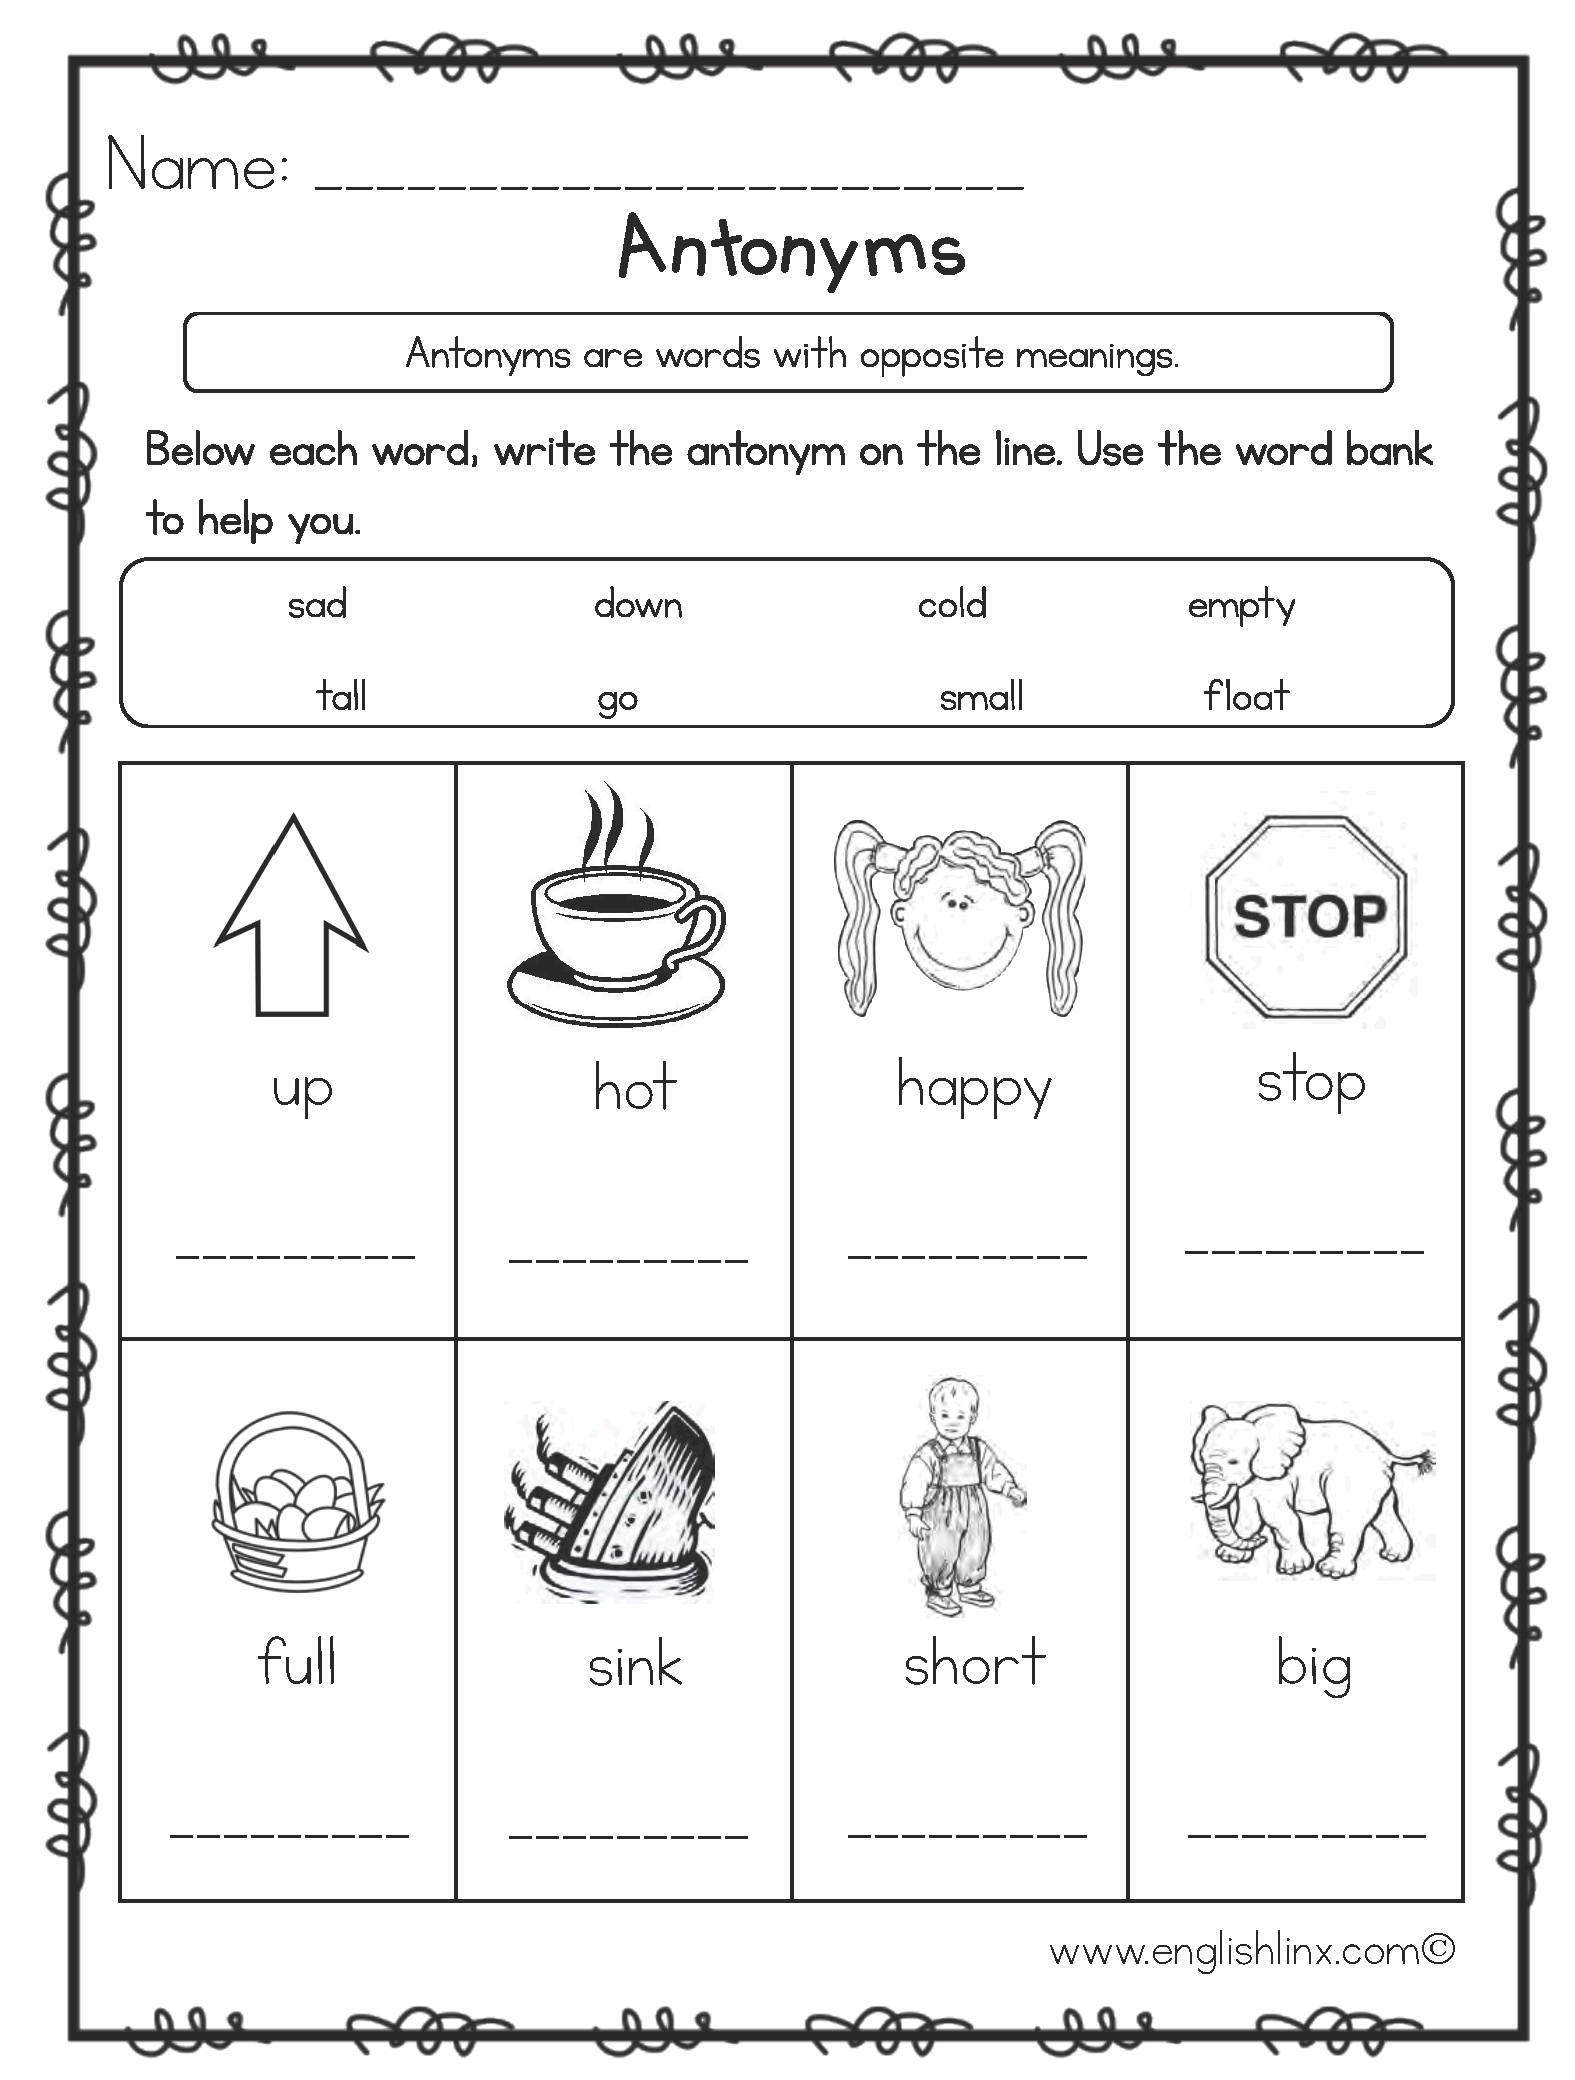 Englishlinx com | Antonyms Worksheets